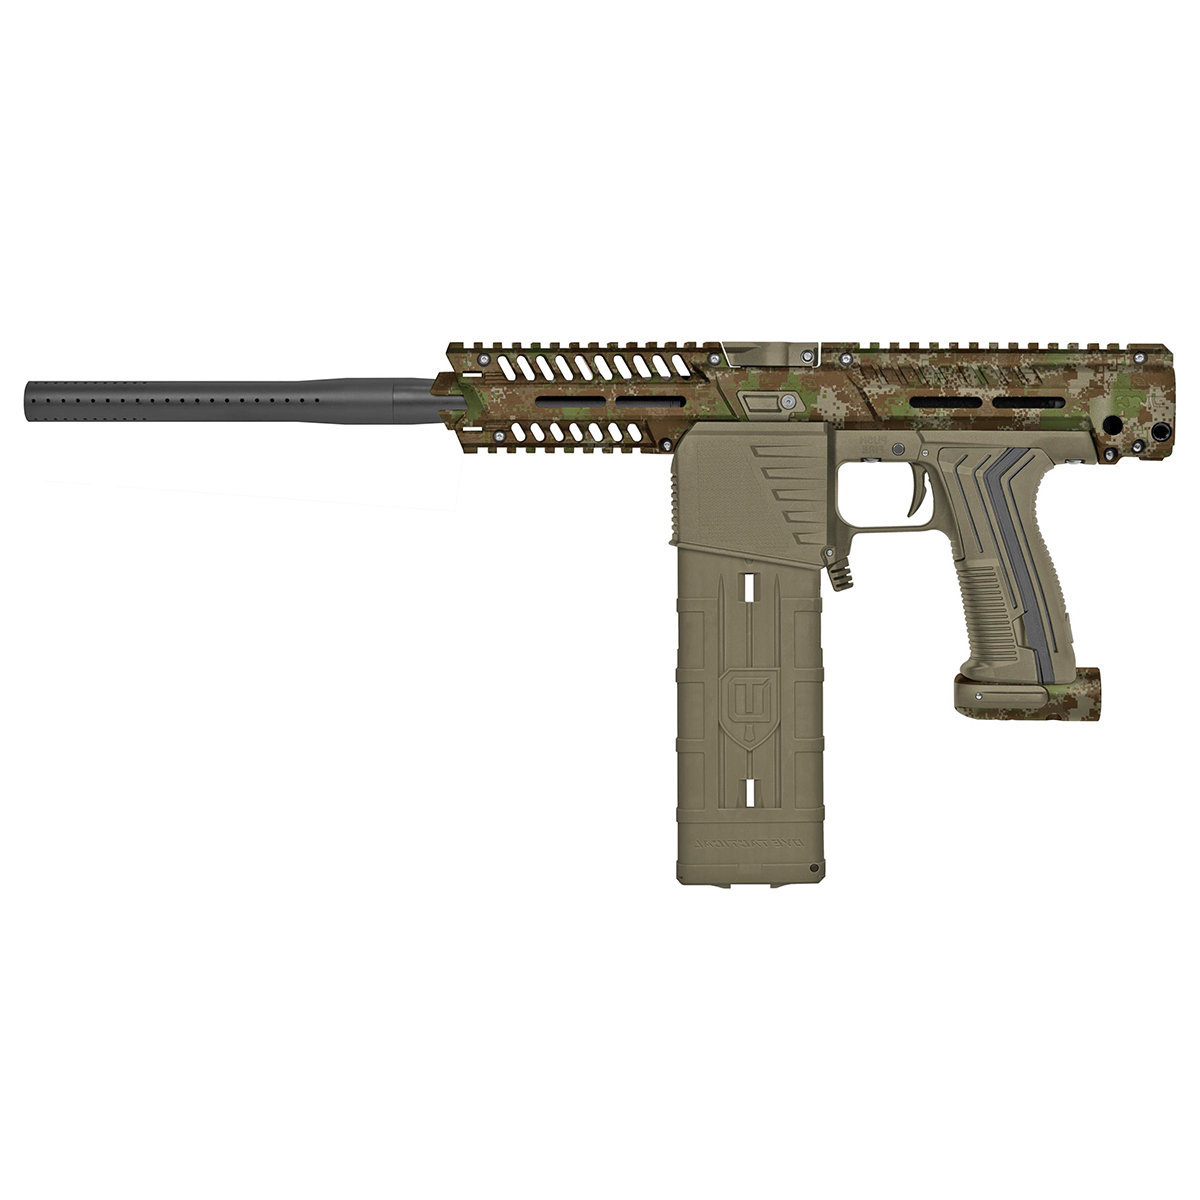 View larger image of Eclipse EMF100 MagFed Paintball Gun